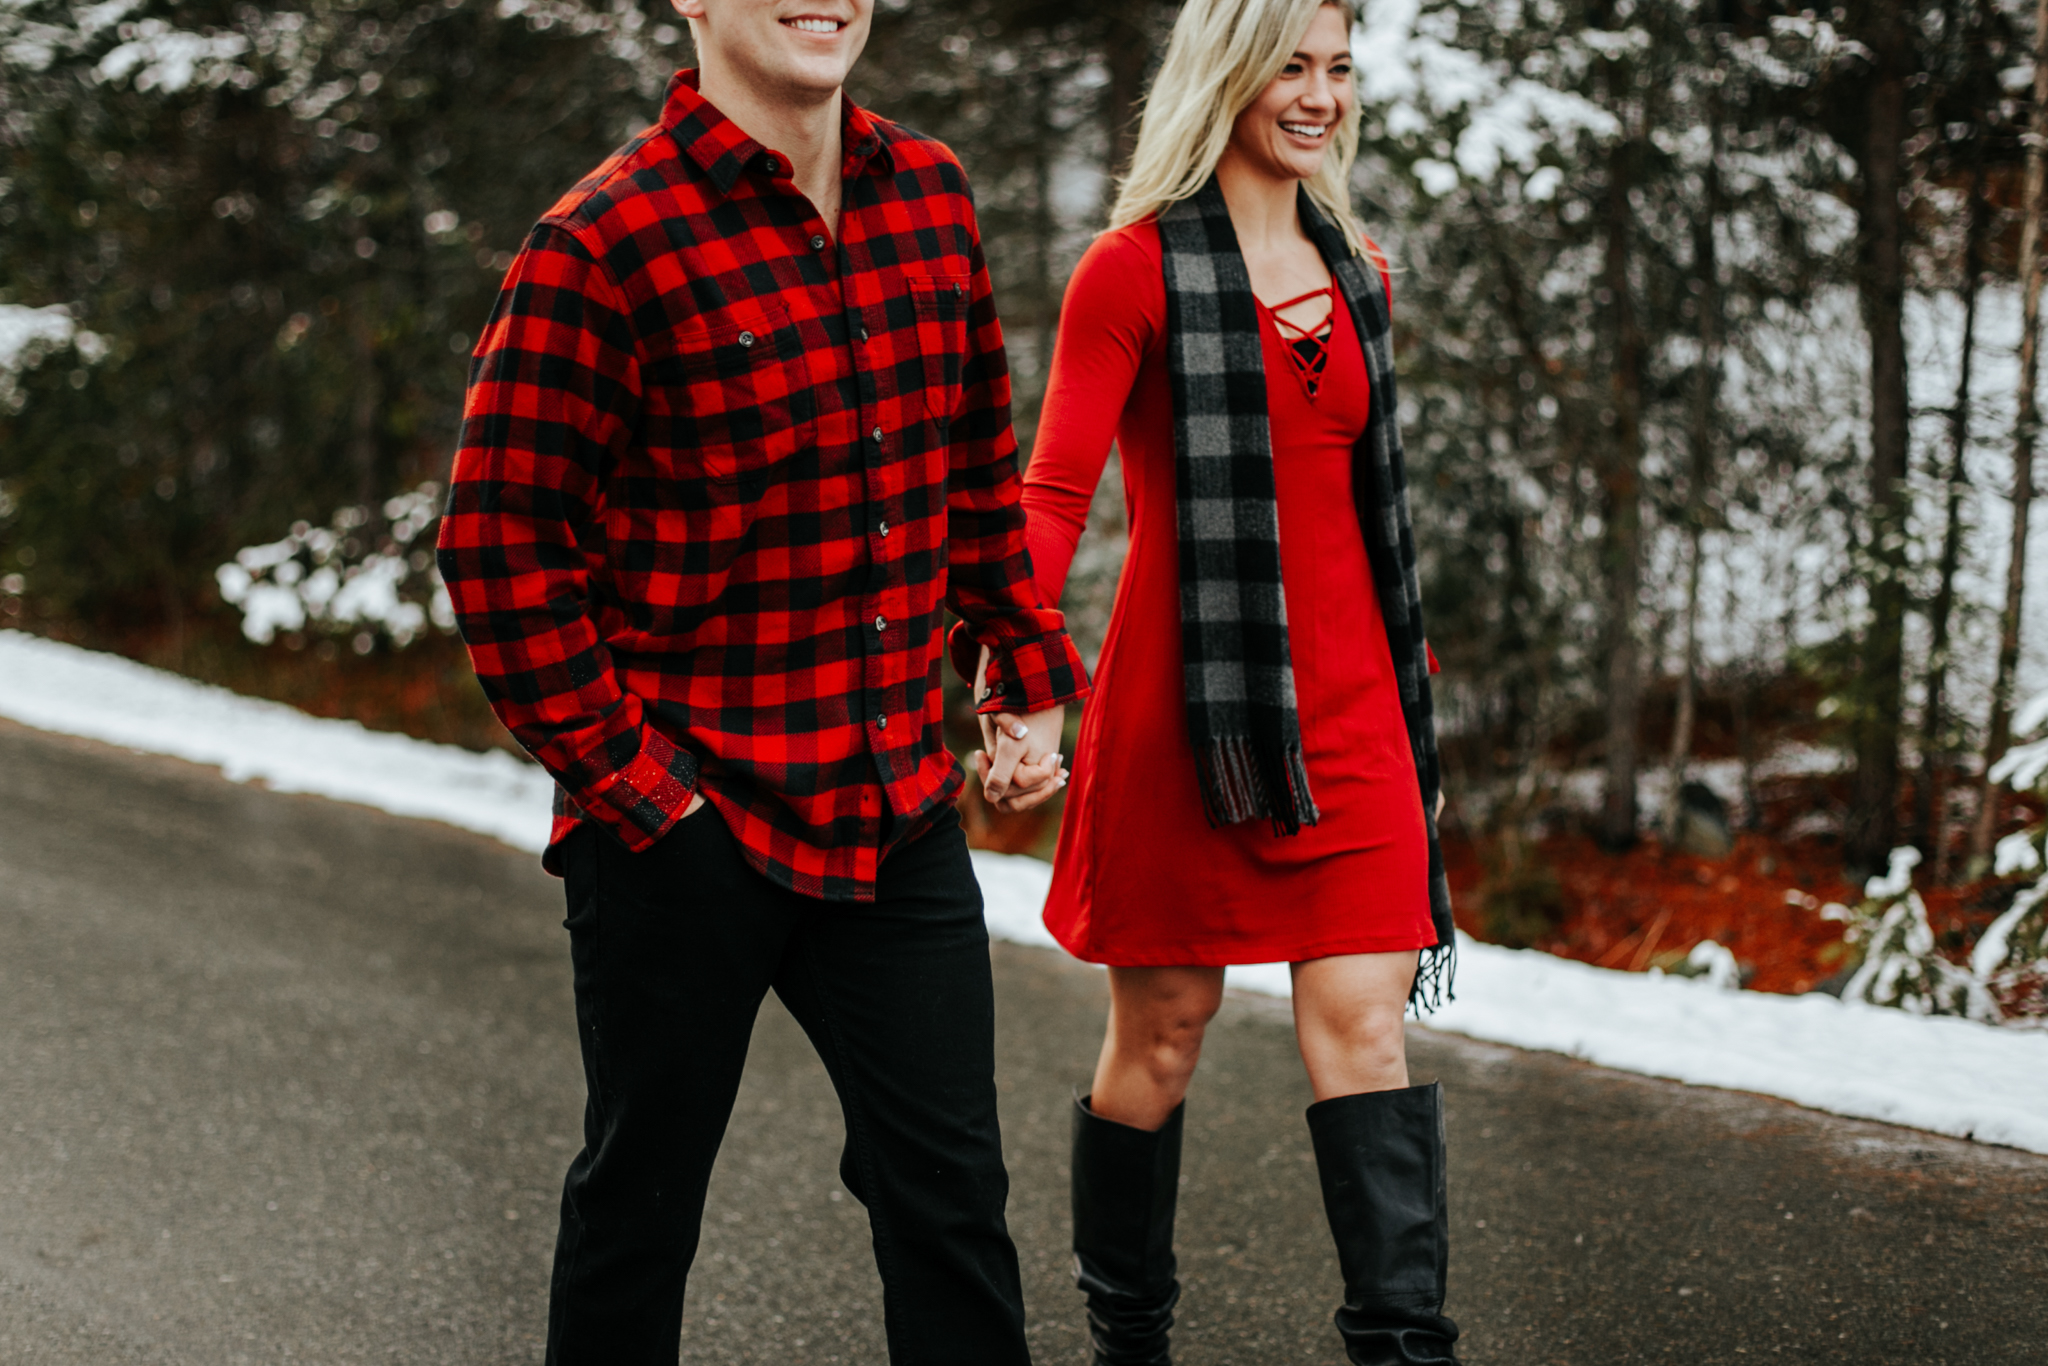 love-and-be-loved-photography-mountain-engagement-ashlyn-rob-perfect-fit-4-u-photo-image-picture-55.jpg